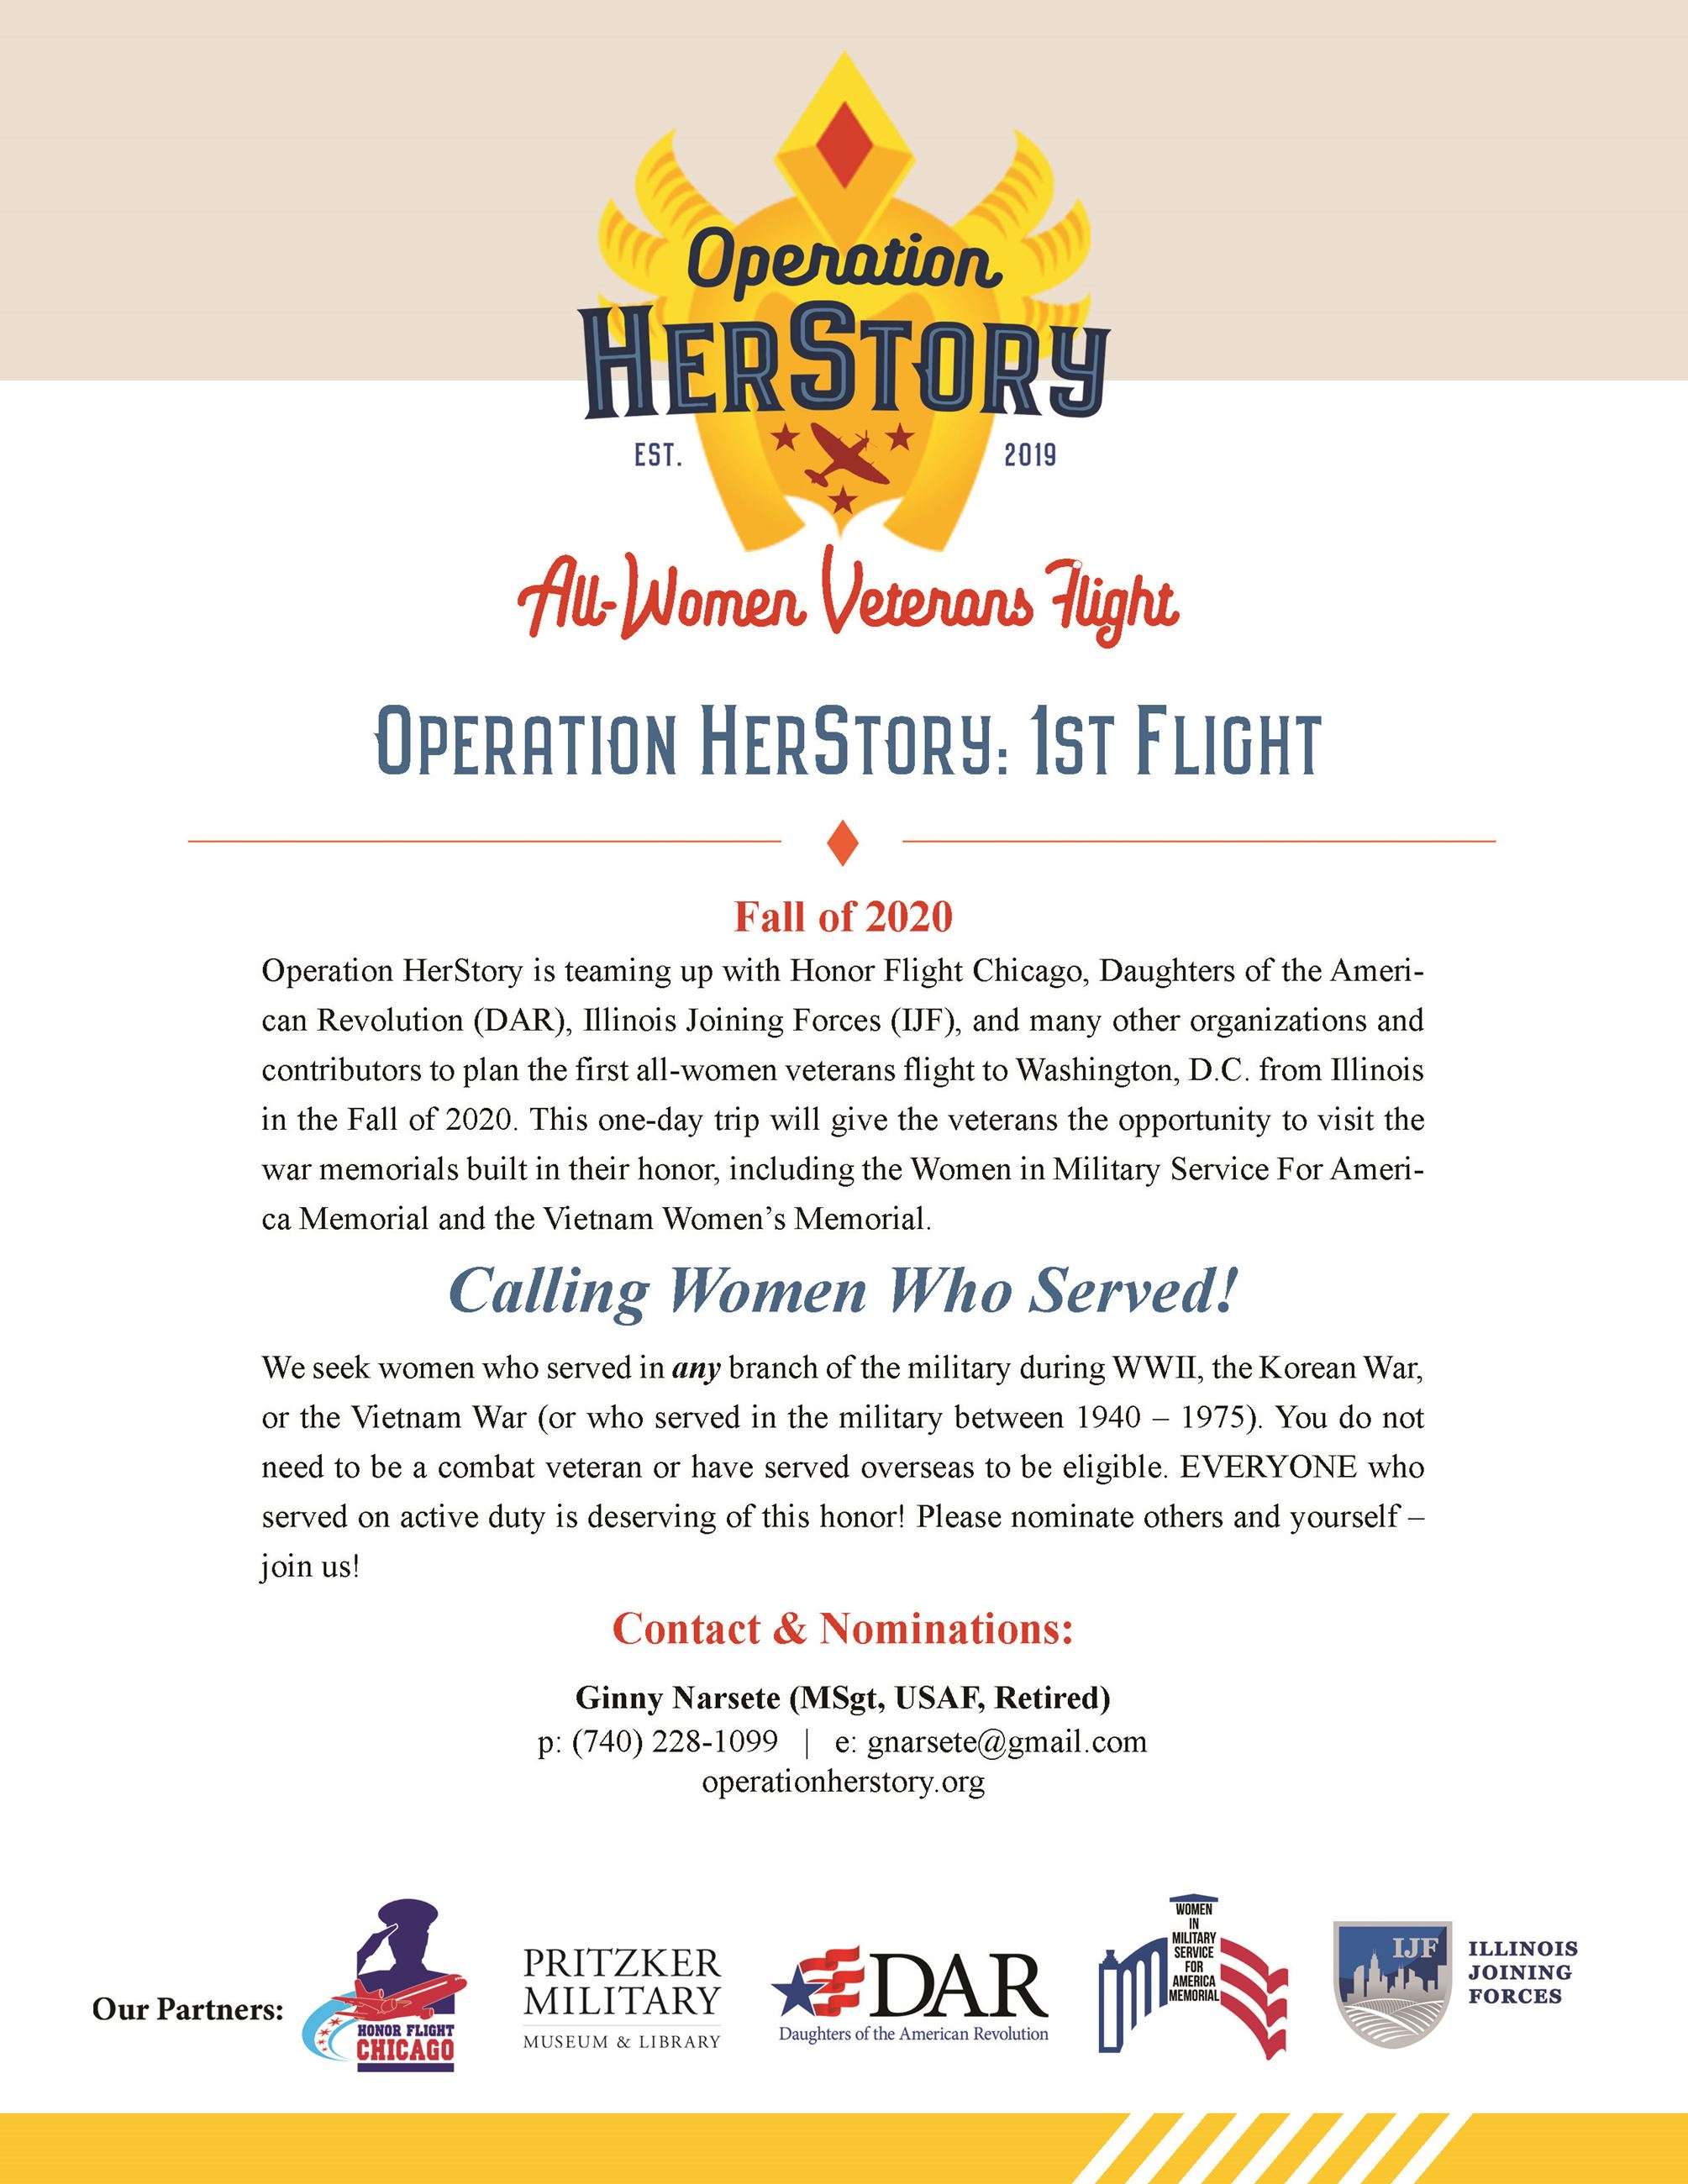 Veteran Resources - Operation HERstory All Women Veterans Flight